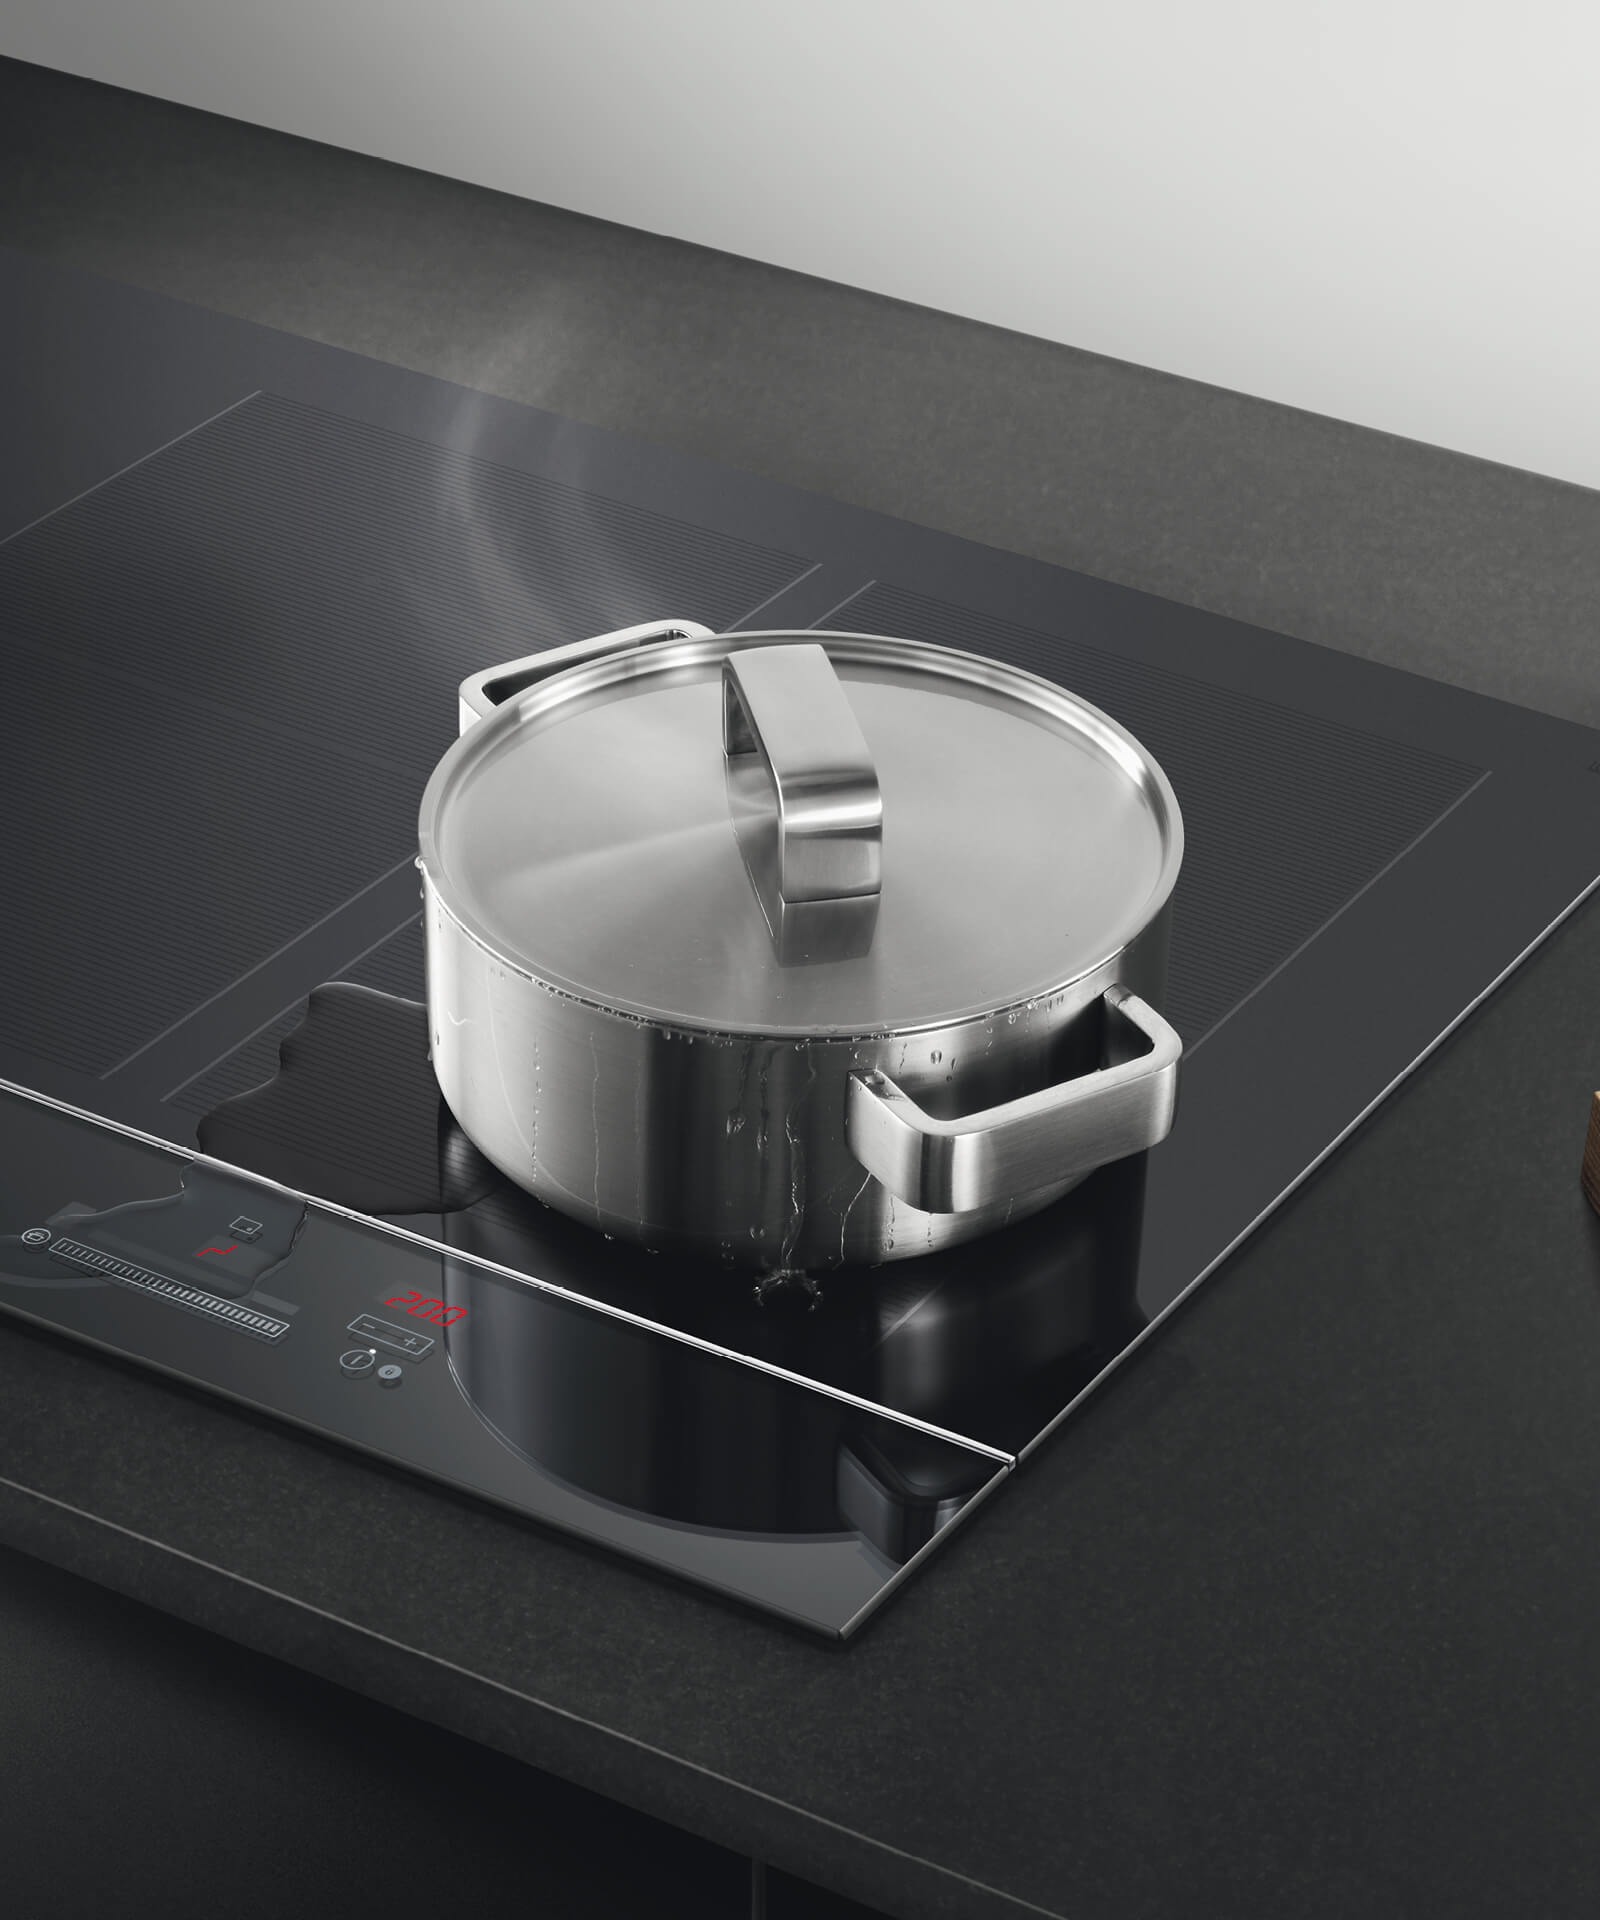 Classic Cuisine Induction Cooker Instructions Ci905dtb3 90cm 5 Zone Touch Andslide Induction Hob